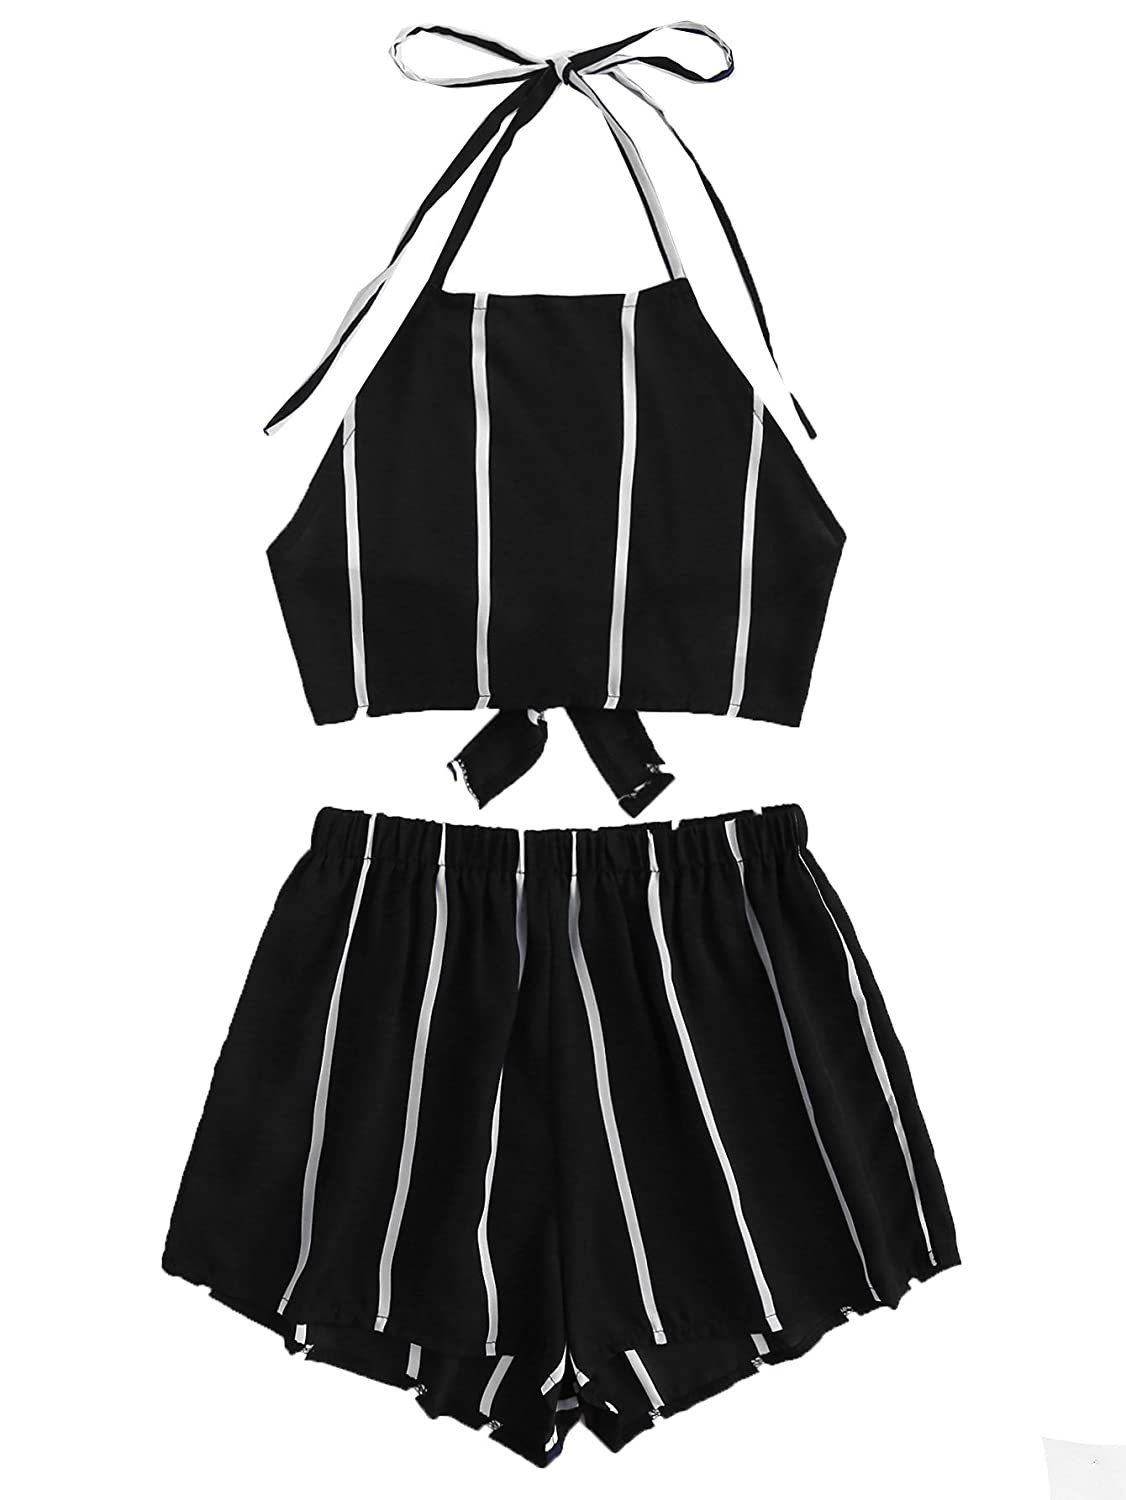 5black SweatyRocks Women's 2 Piece Outfit Striped V Neck Knot Front Crop Top with Shorts